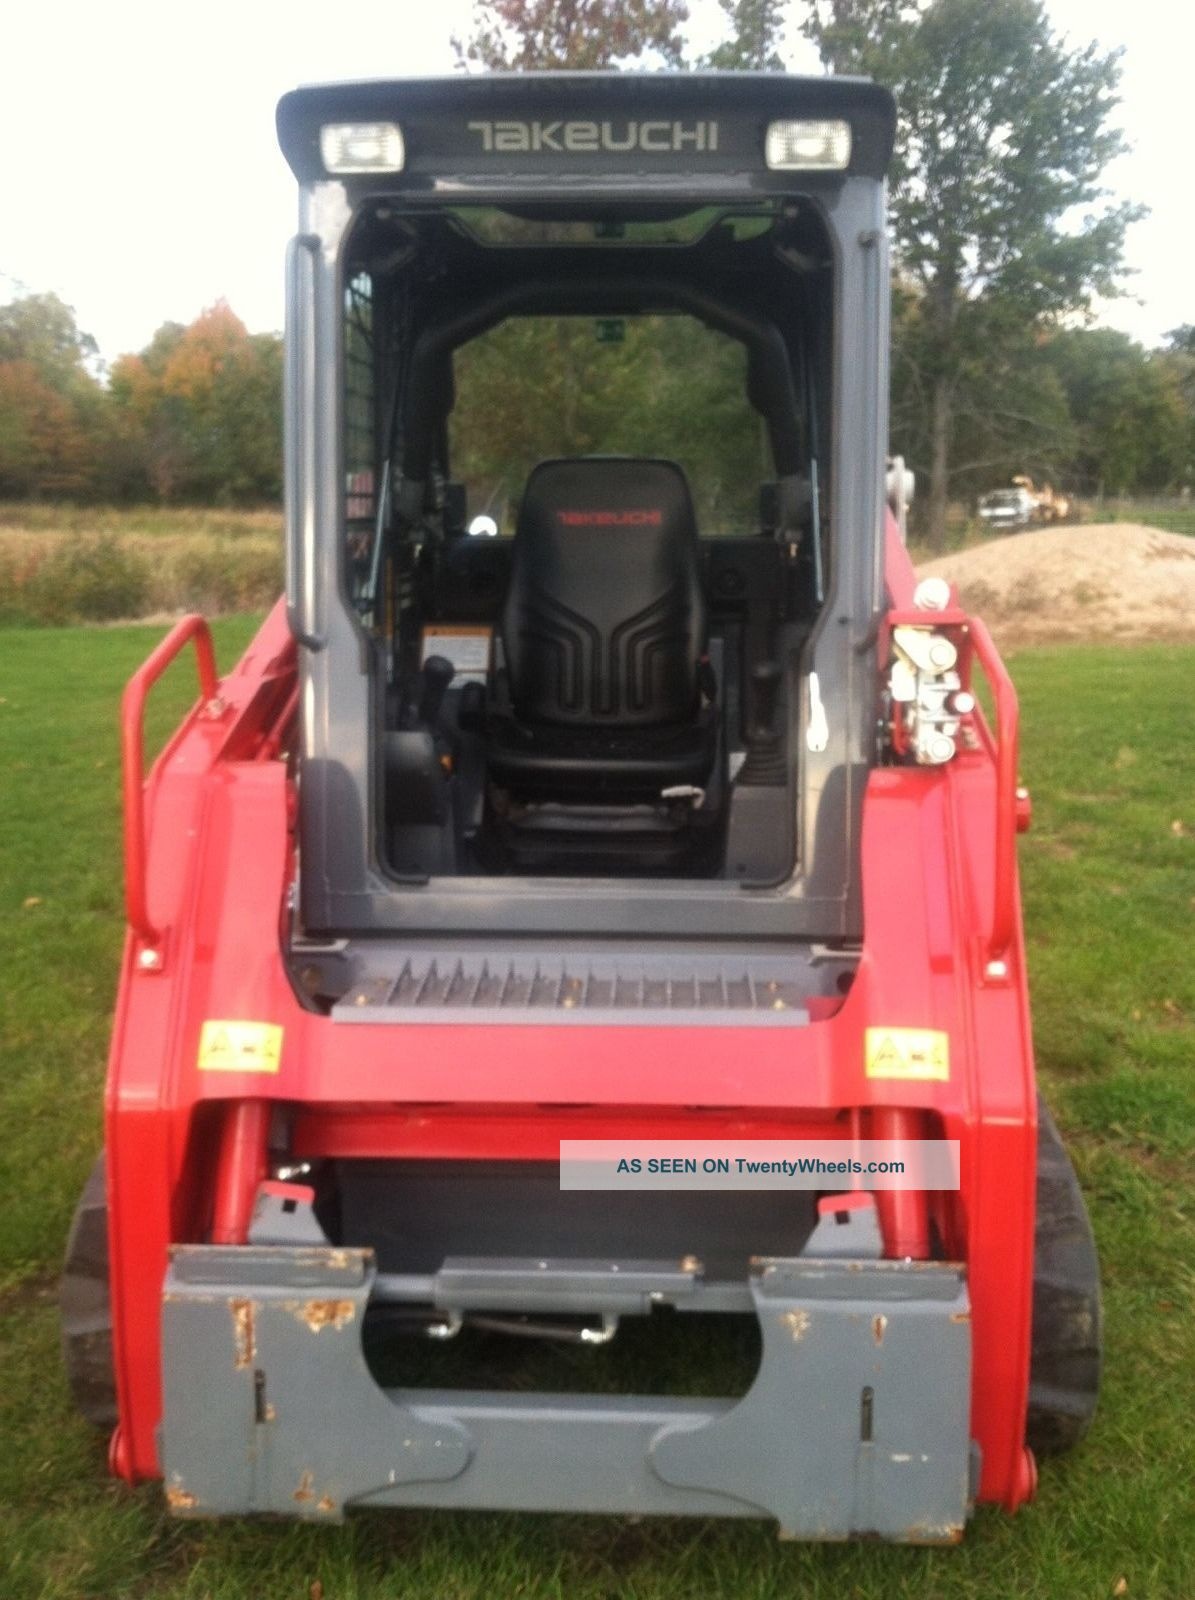 2014 Takeuchi Tl8 Skid Steer Only 19 7 Hours Ac Heat Cab